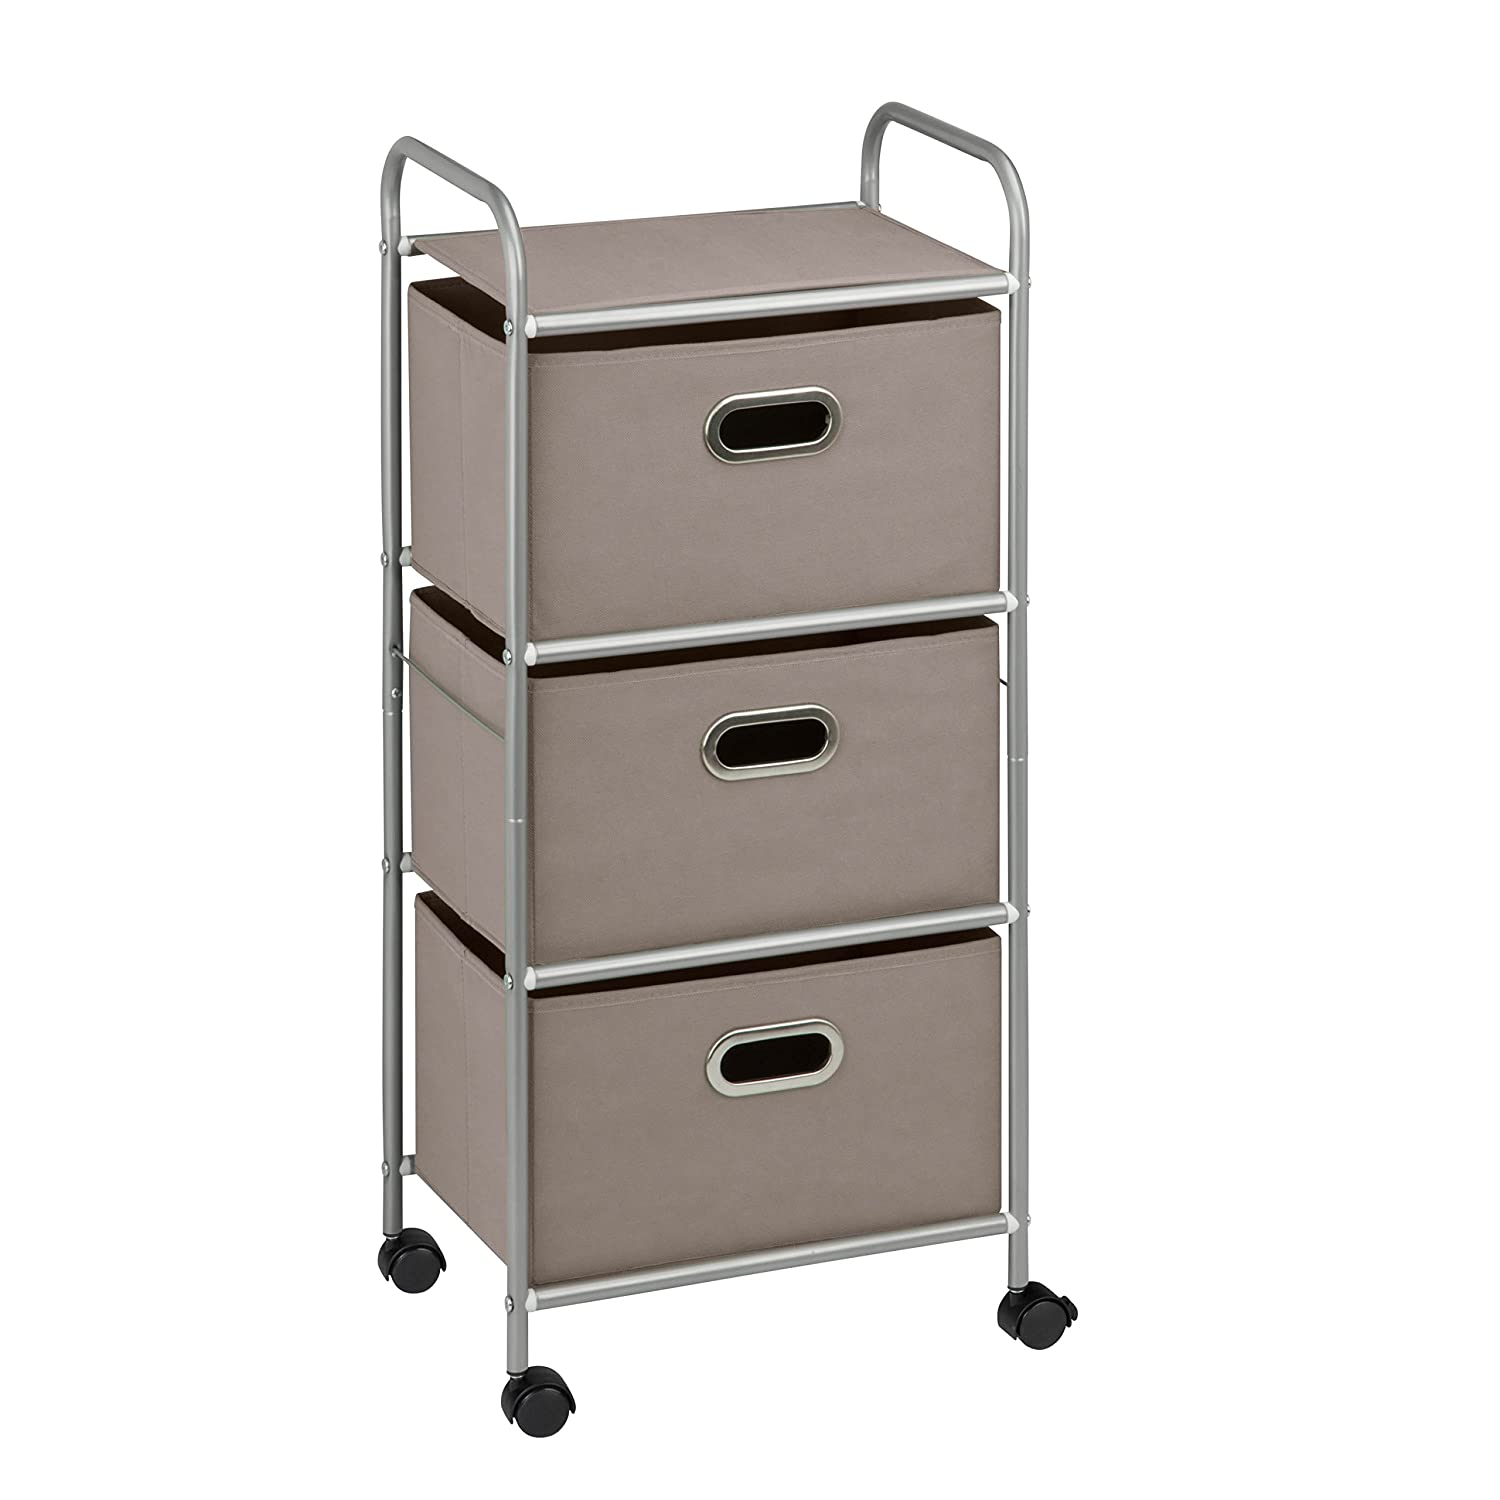 grey kitchen home com do drawers drawer dp with rolling cart vxl amazon honey can